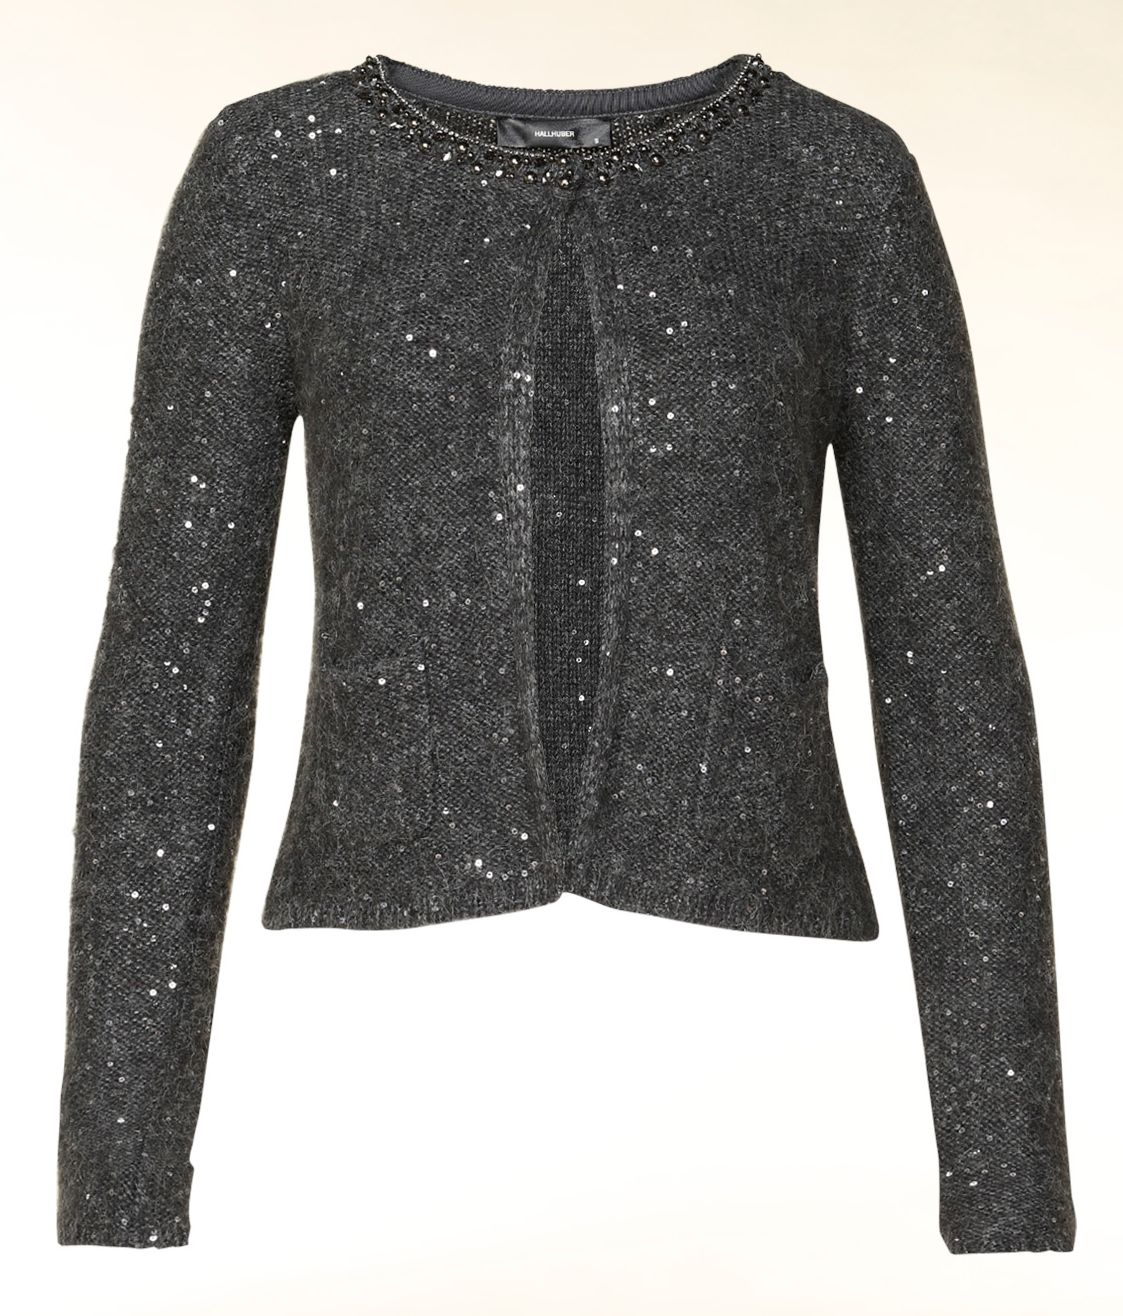 Sequin detail cropped knit cardigan